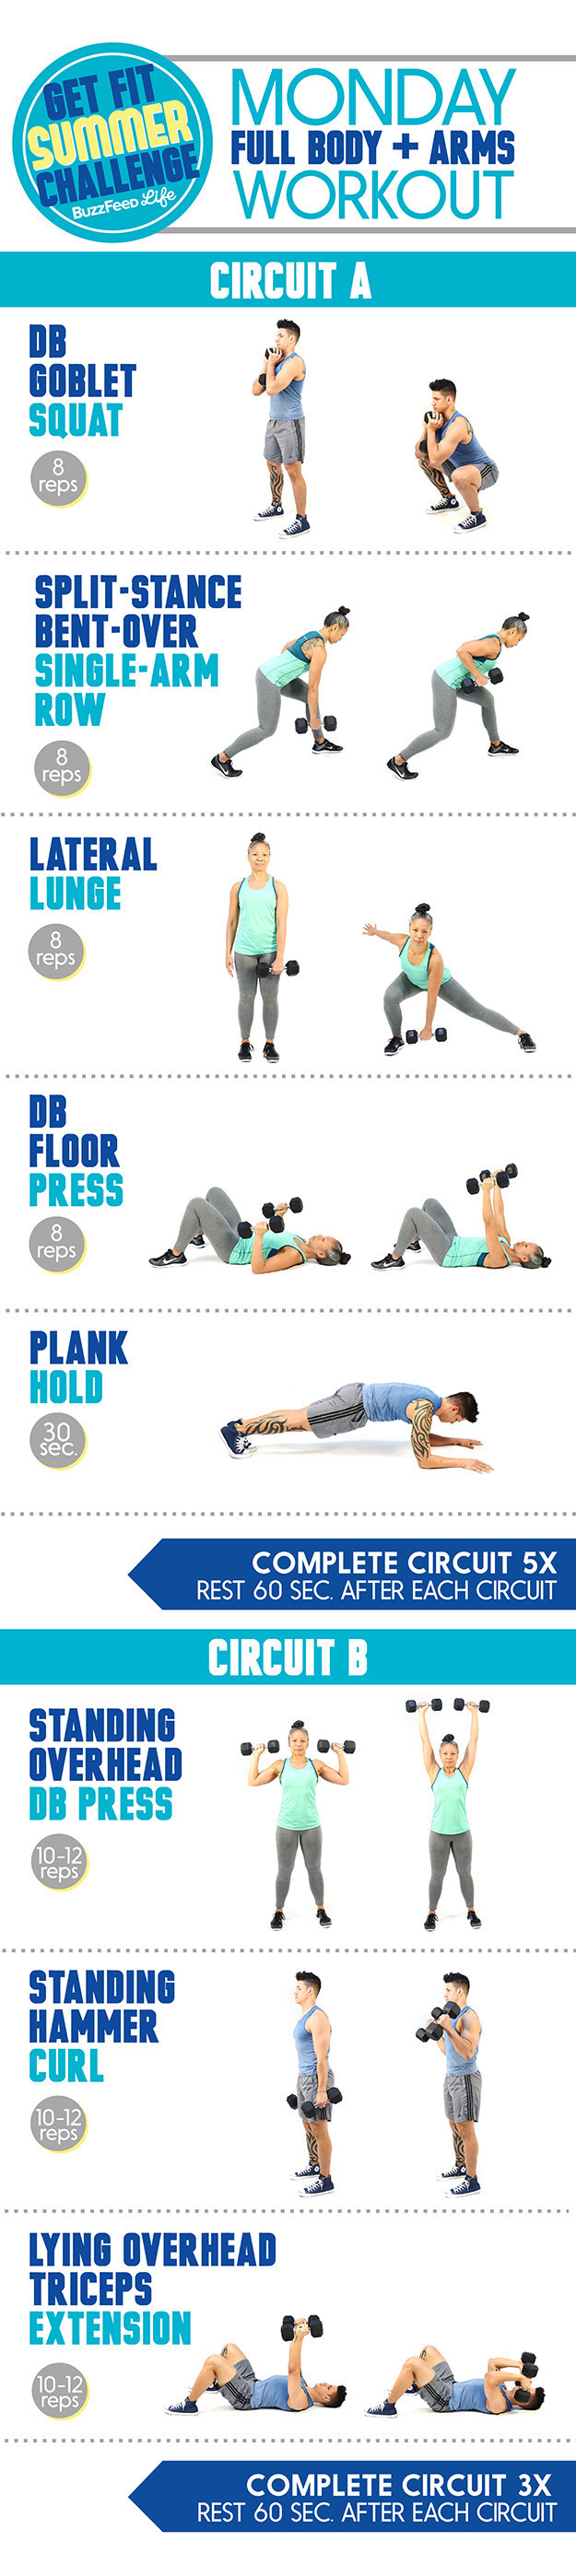 Here s The Monday Workout For The Get Fit Summer Challenge. Here s The Monday Workout For The Get Fit Summer Challenge